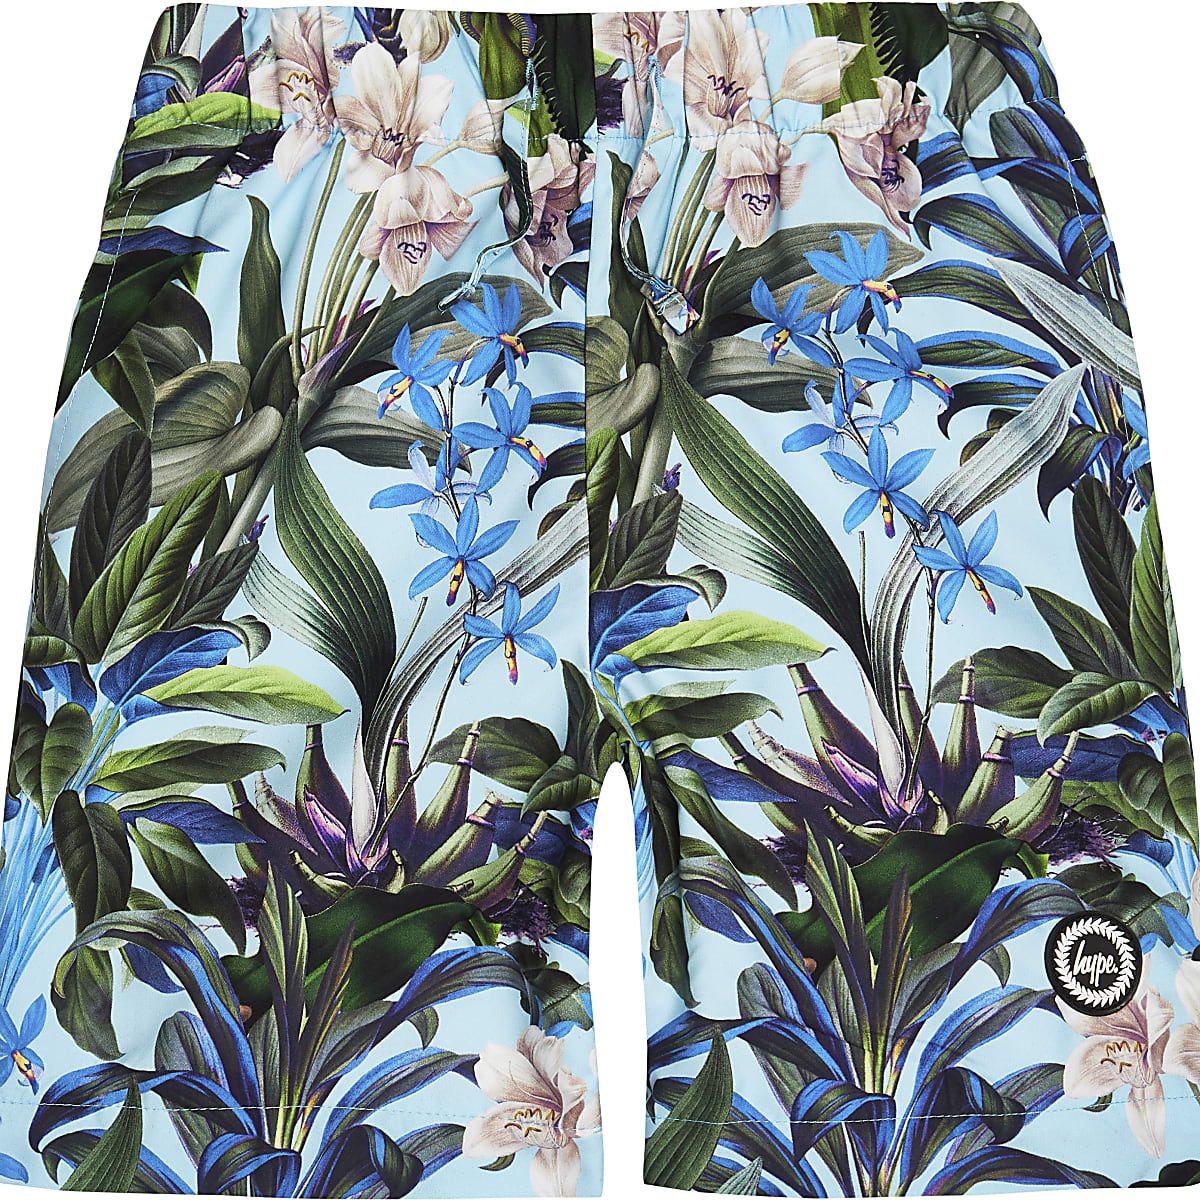 Boys Hype blue tropical swim shorts